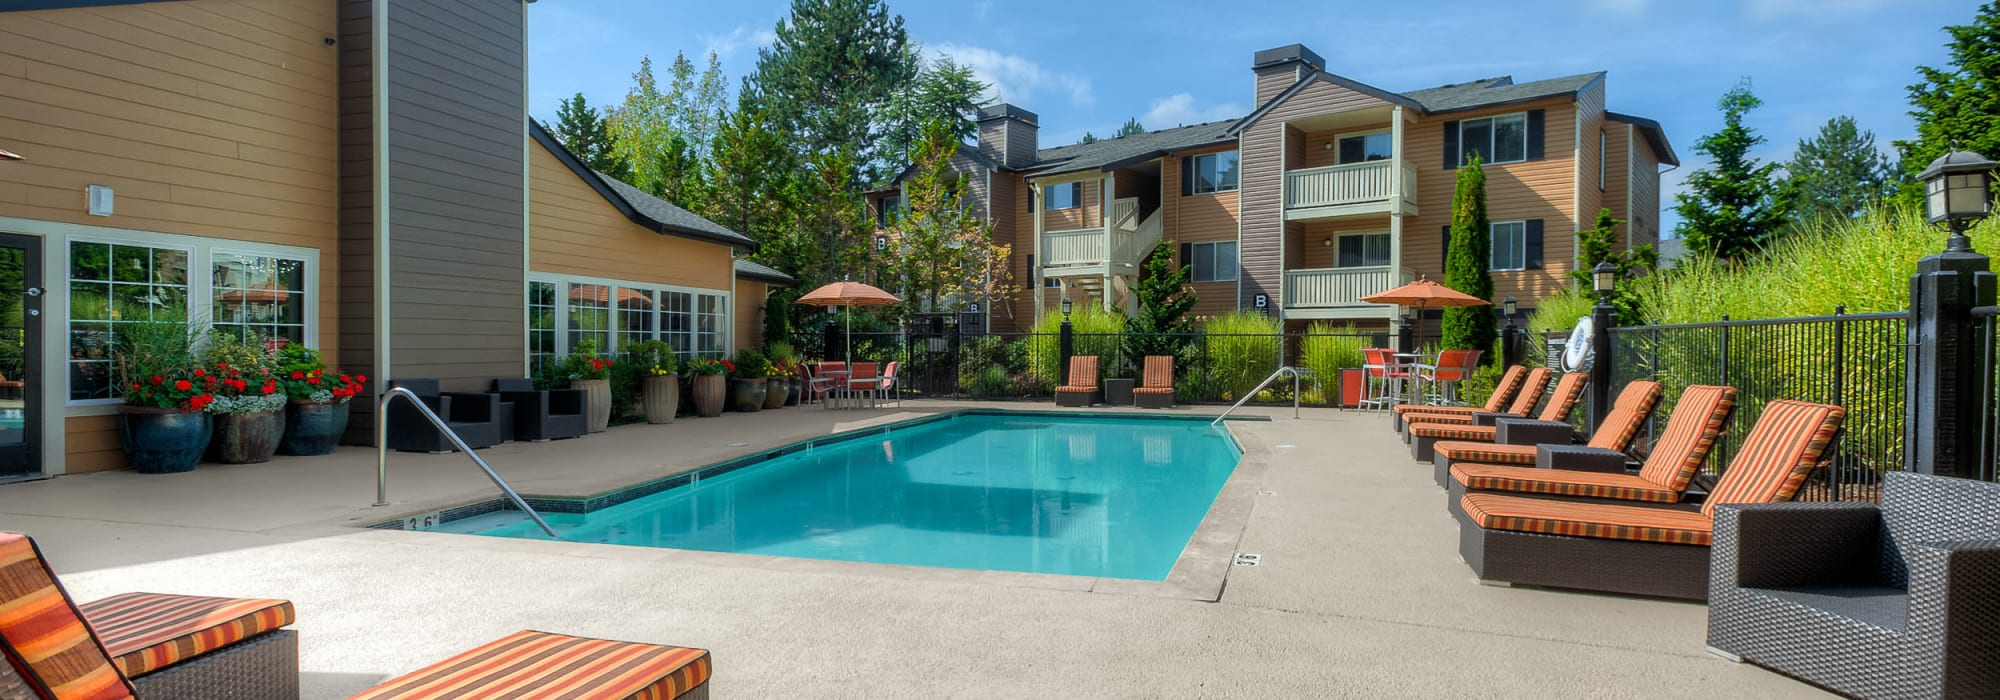 Virtual tours of Newport Crossing Apartments in Newcastle, Washington